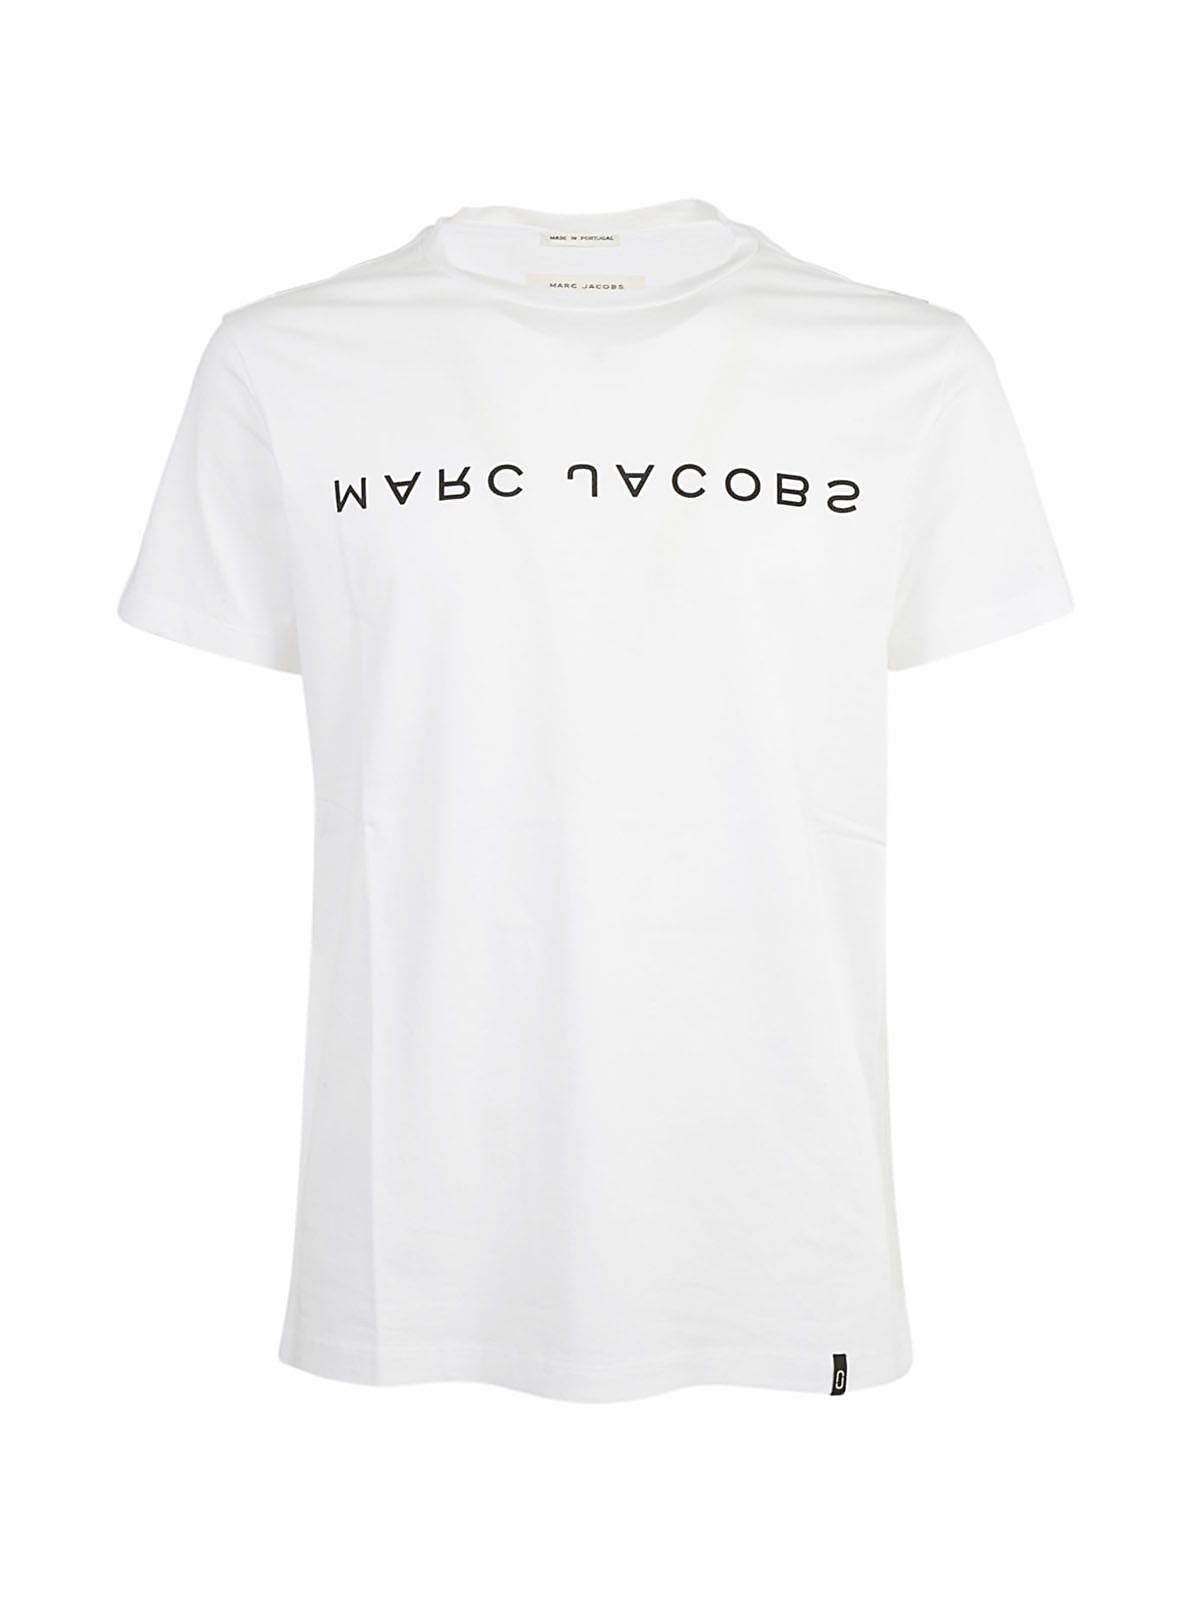 Marc Jacobs Printed T-shirt